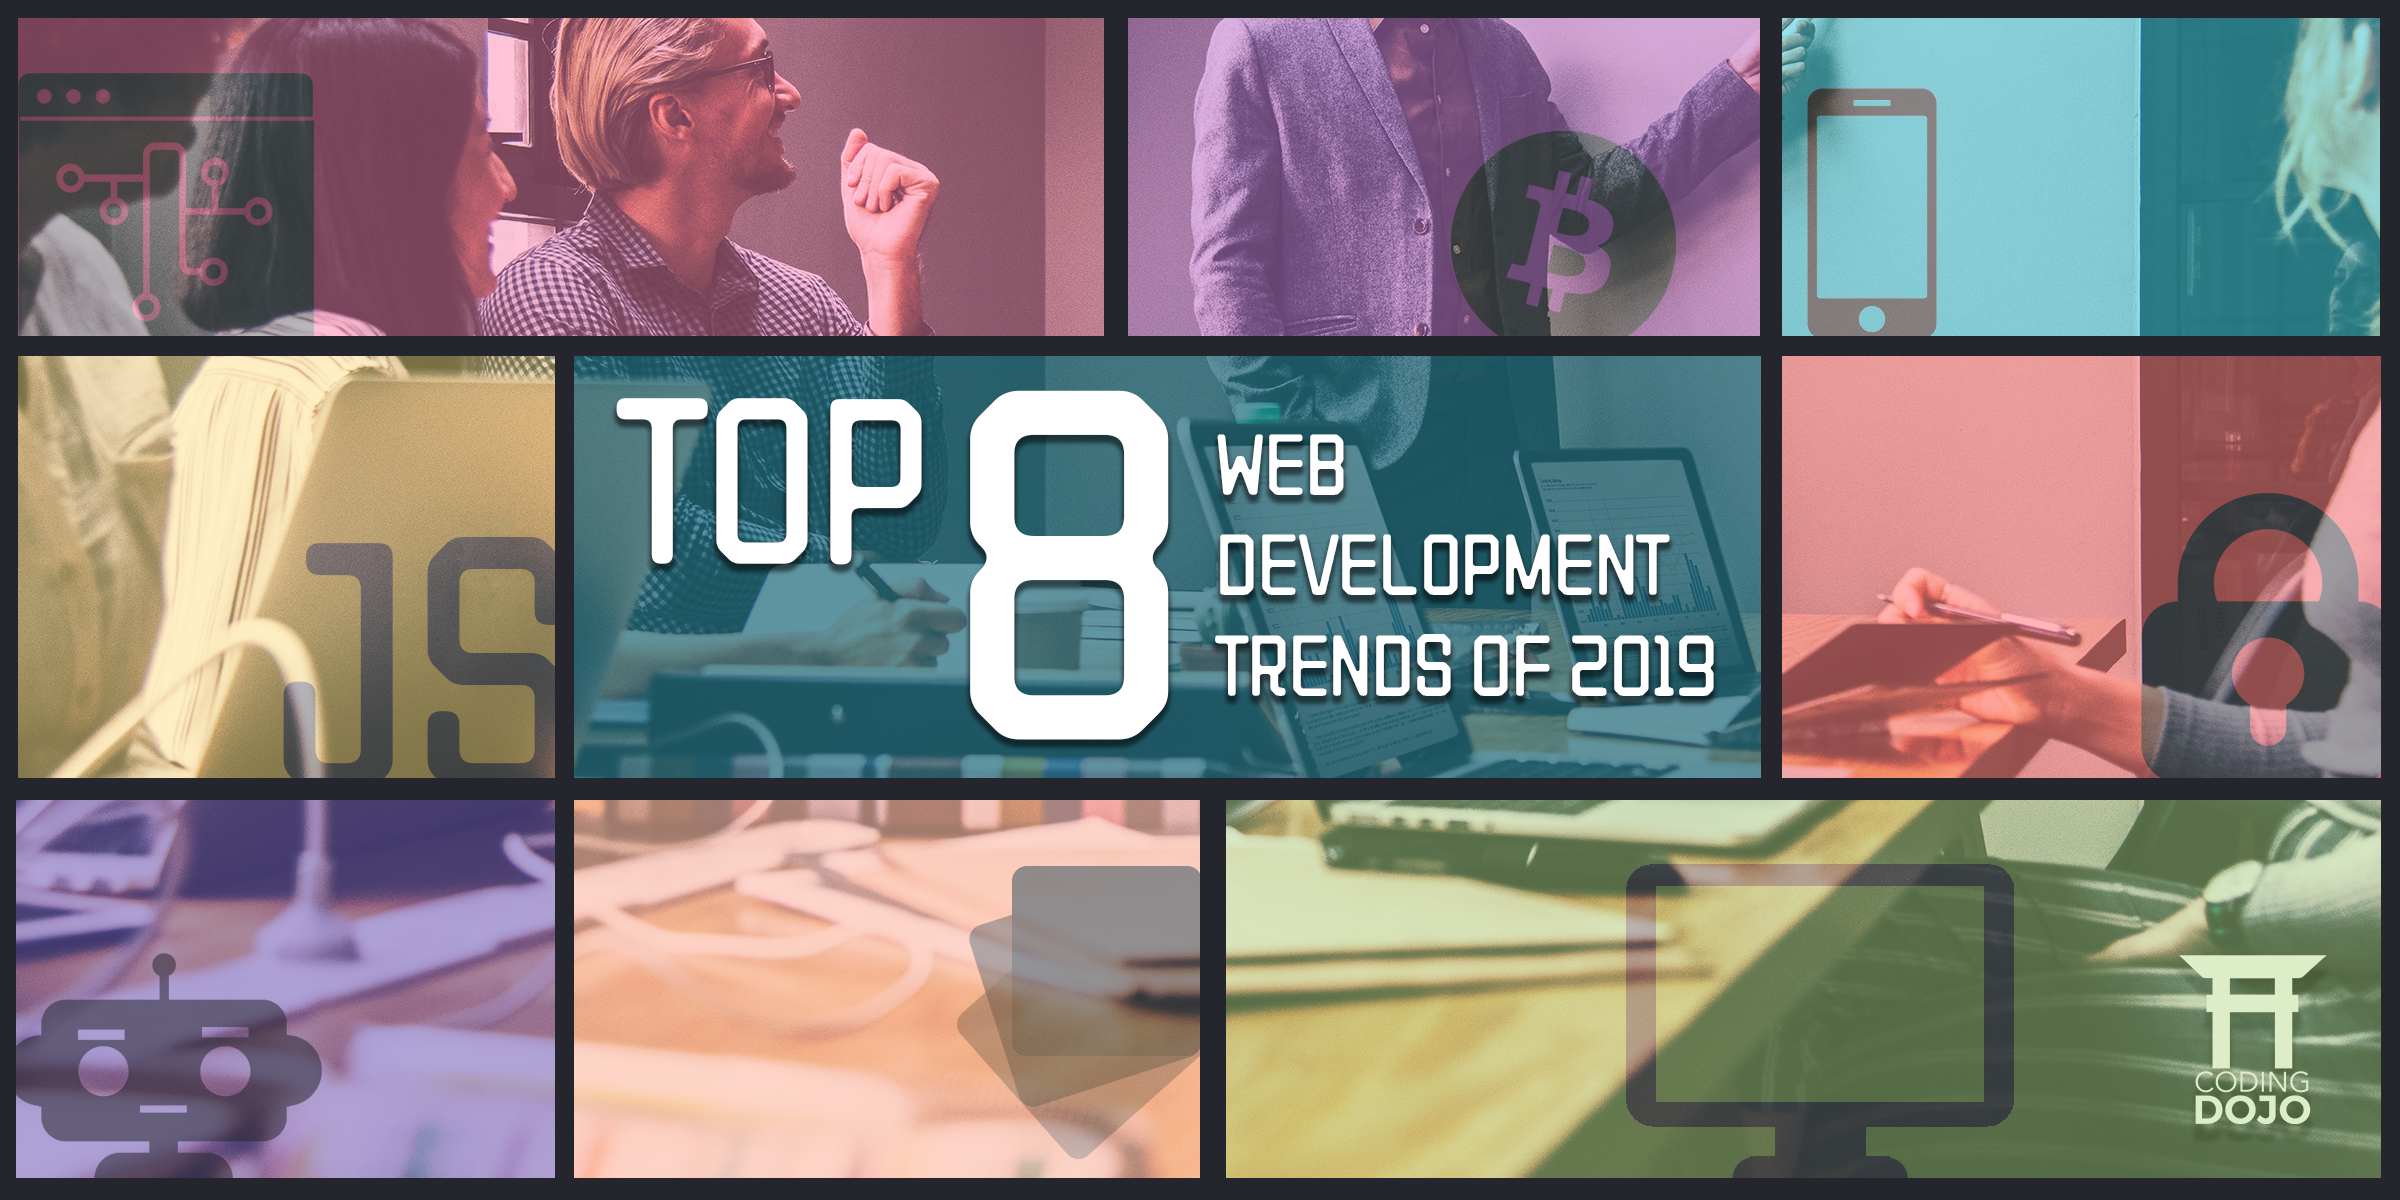 Top 8 Web Development Trends of 2019